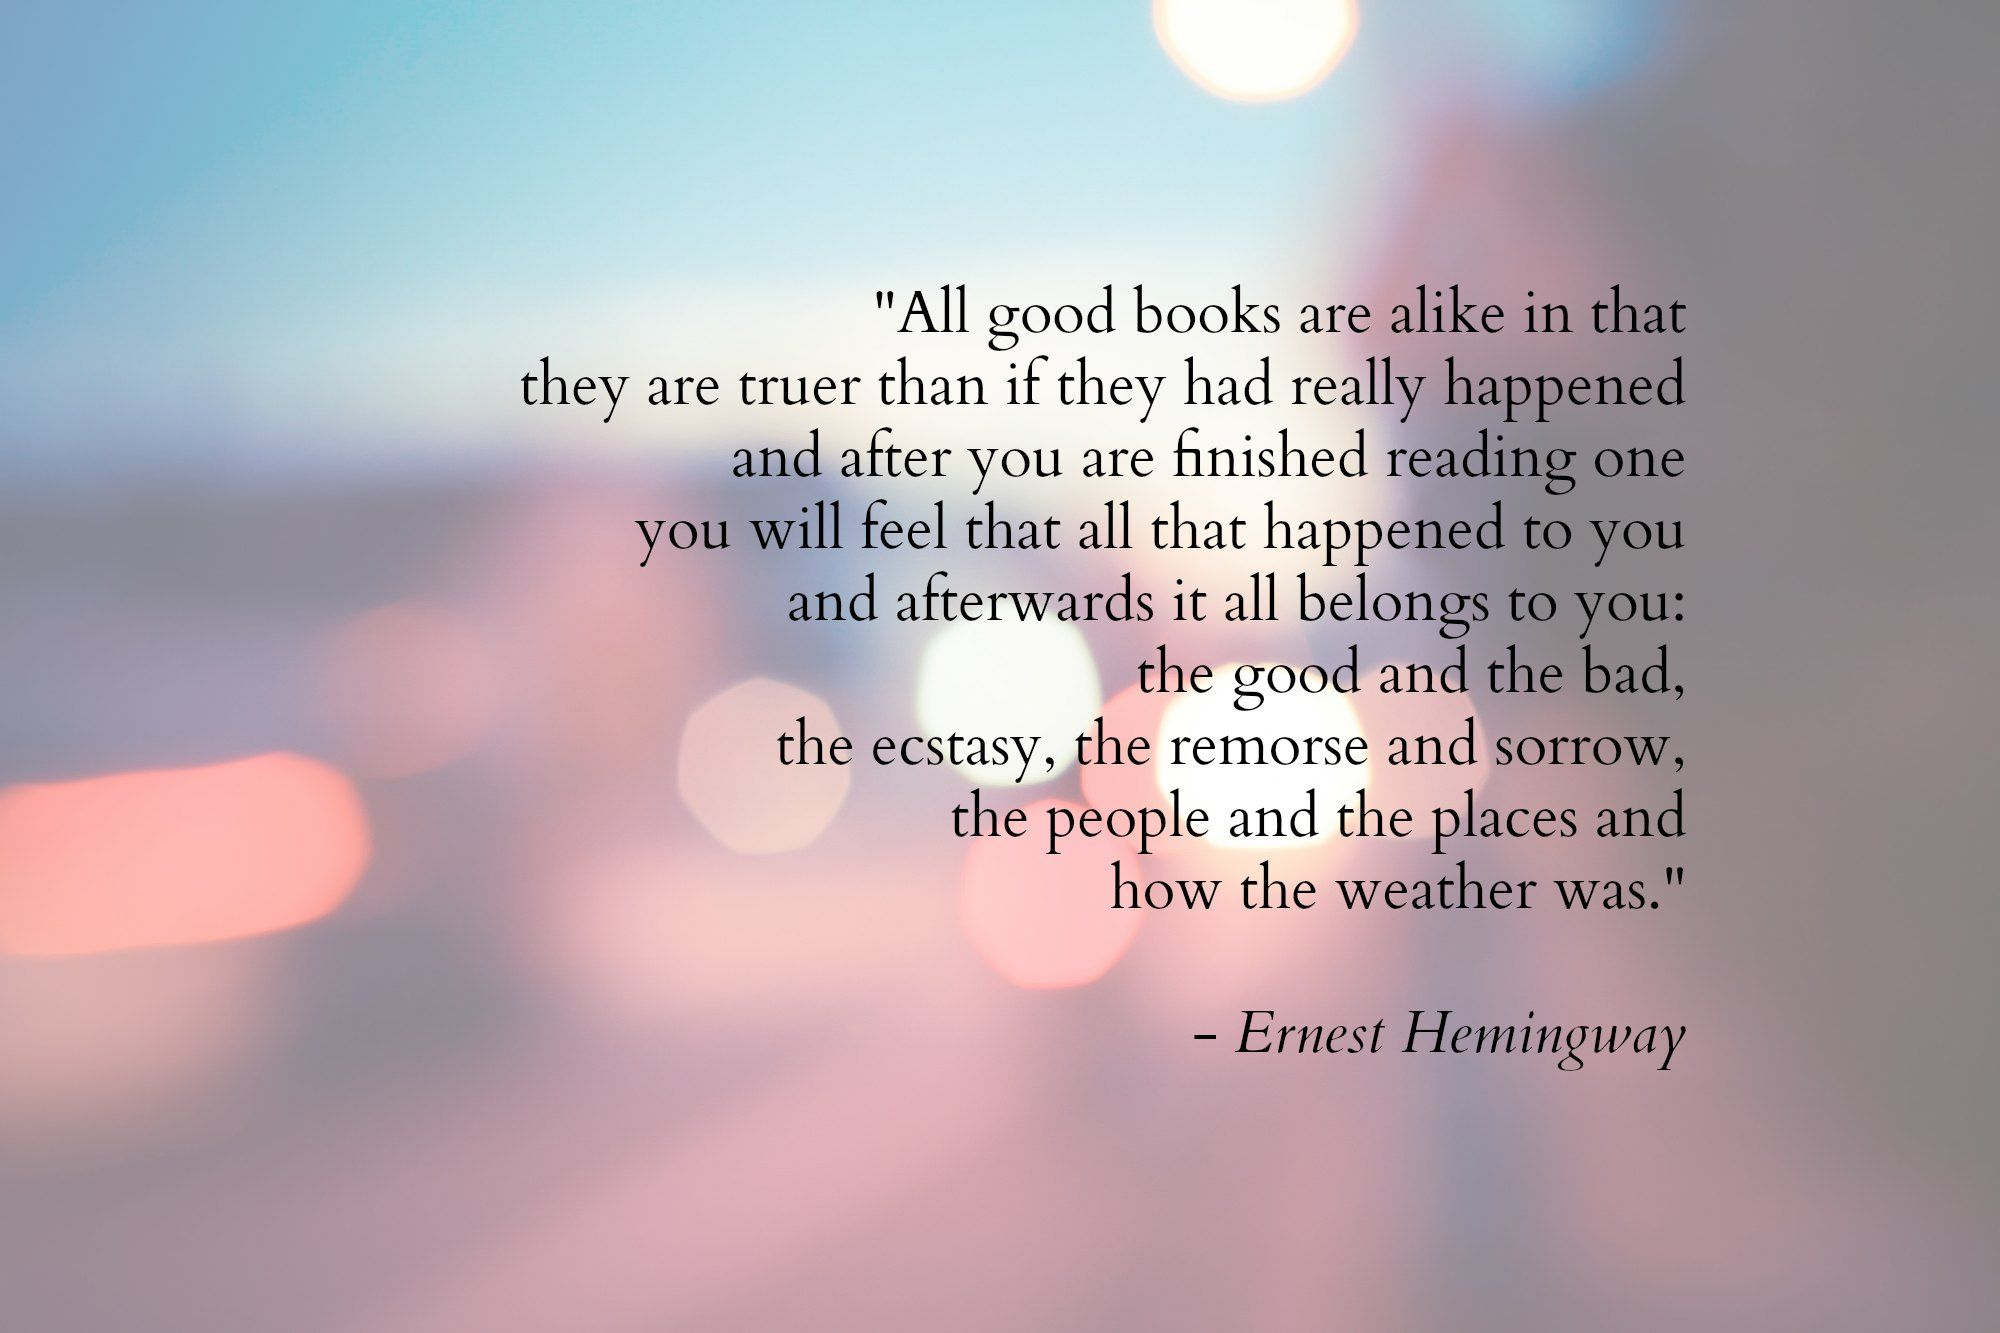 Hemingway Quotes On Love The Old Man And The Sea  Ernest Hemingway  Quotes I Love  Pinterest